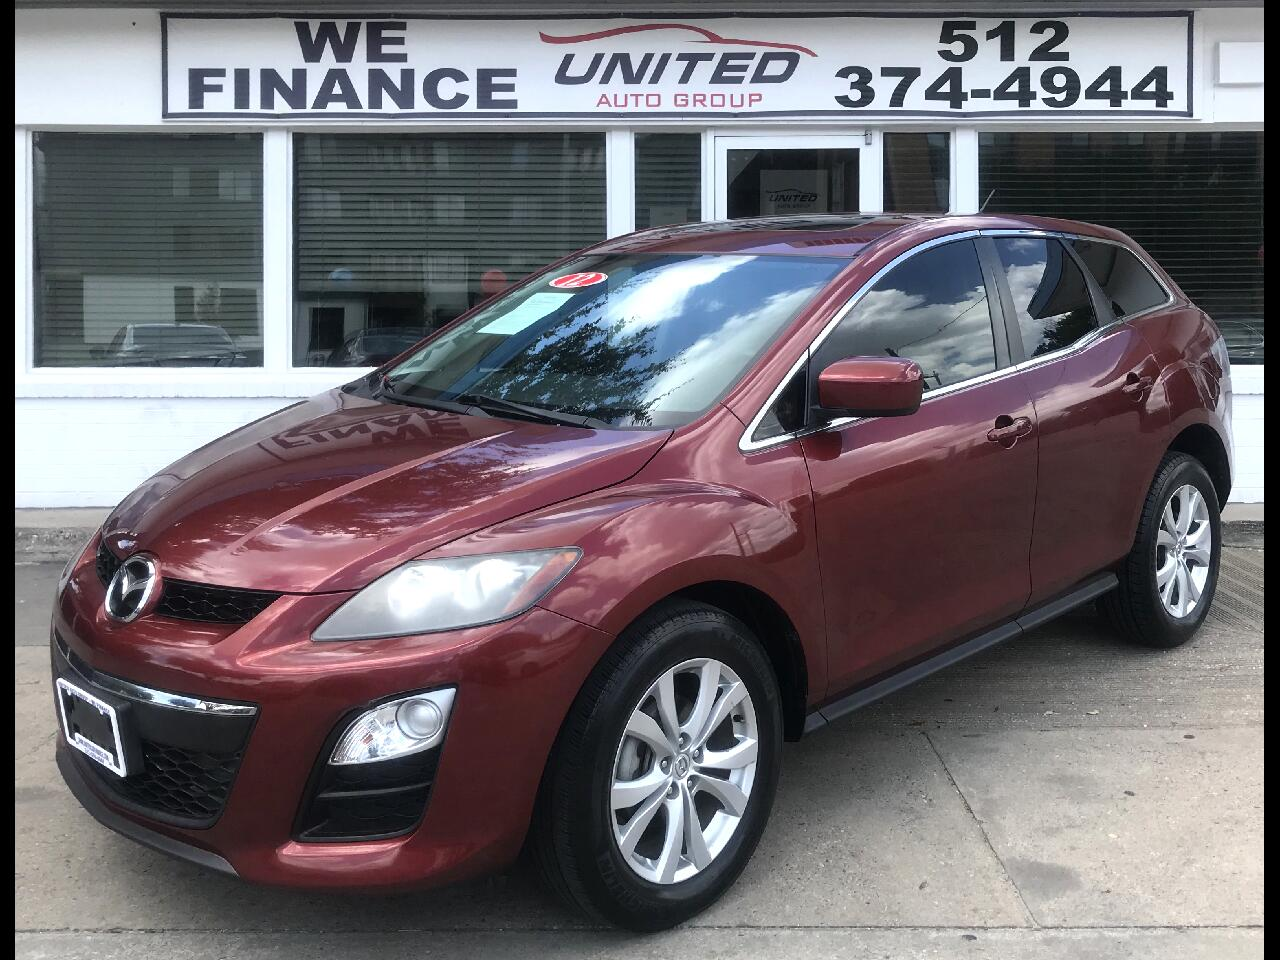 Mazda CX-7 FWD 4dr s Touring 2012